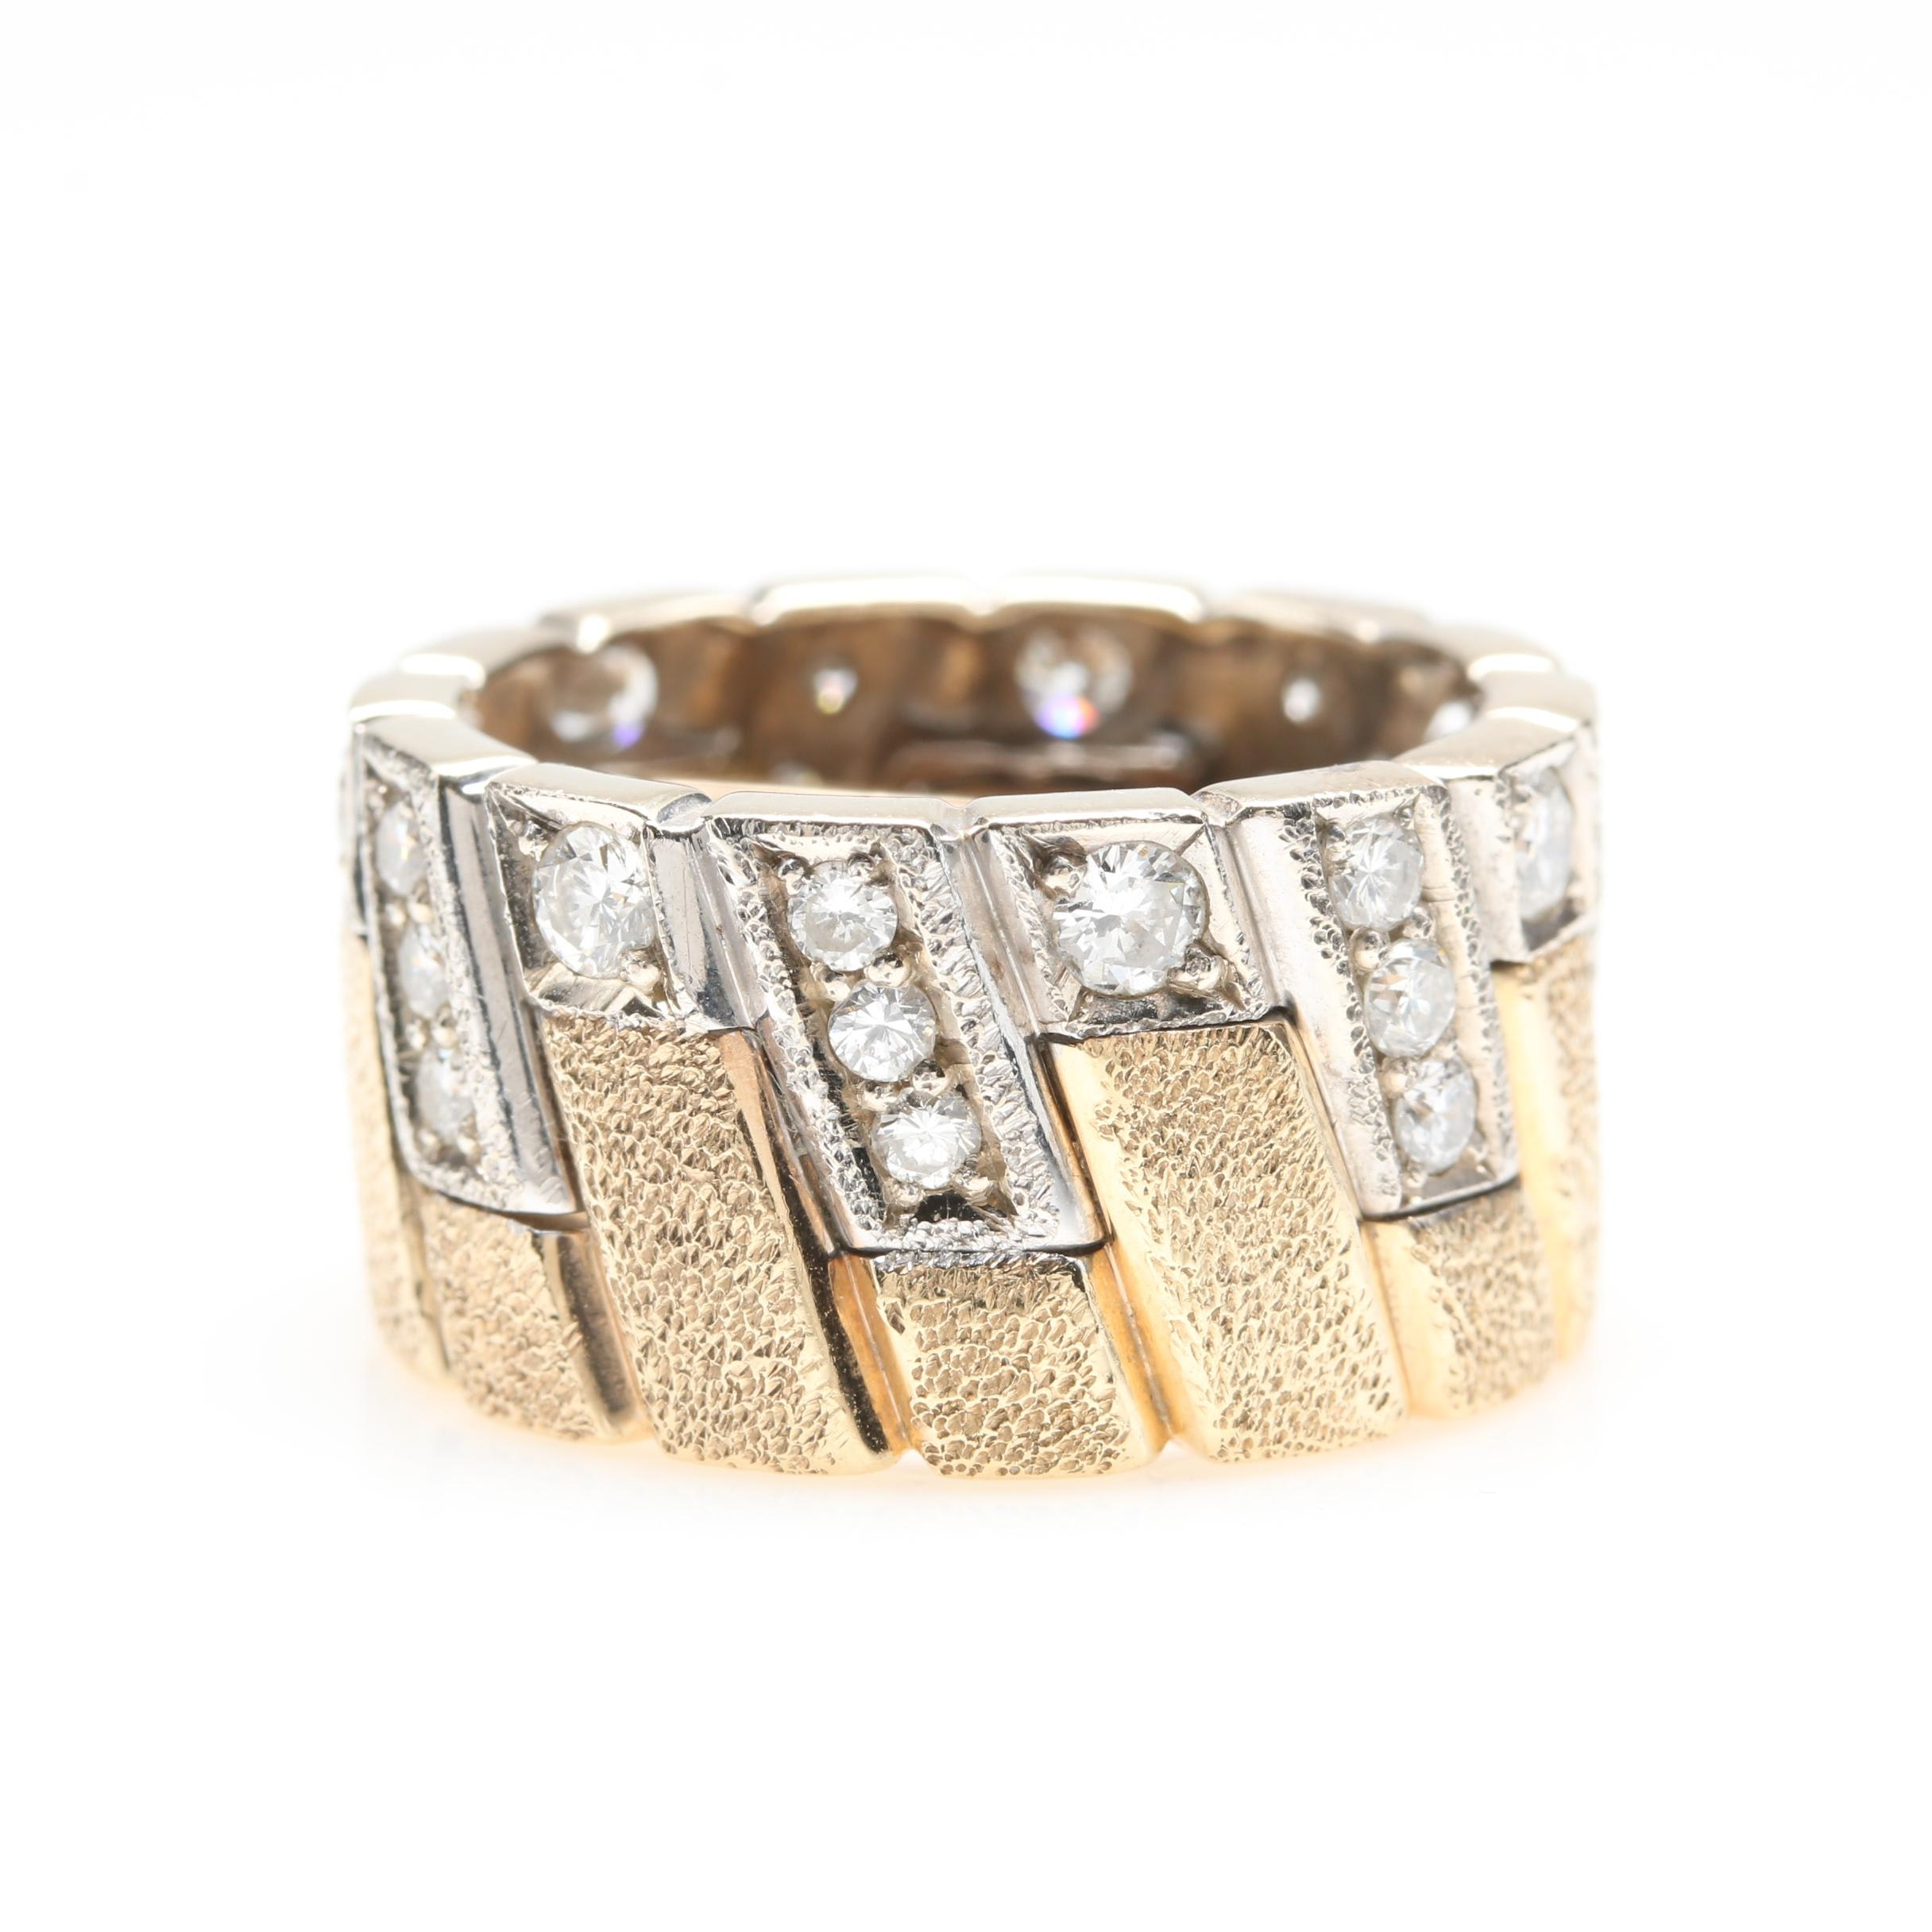 14K Yellow Gold 1.28 CTW Diamond Ring with 14K White Gold Accents